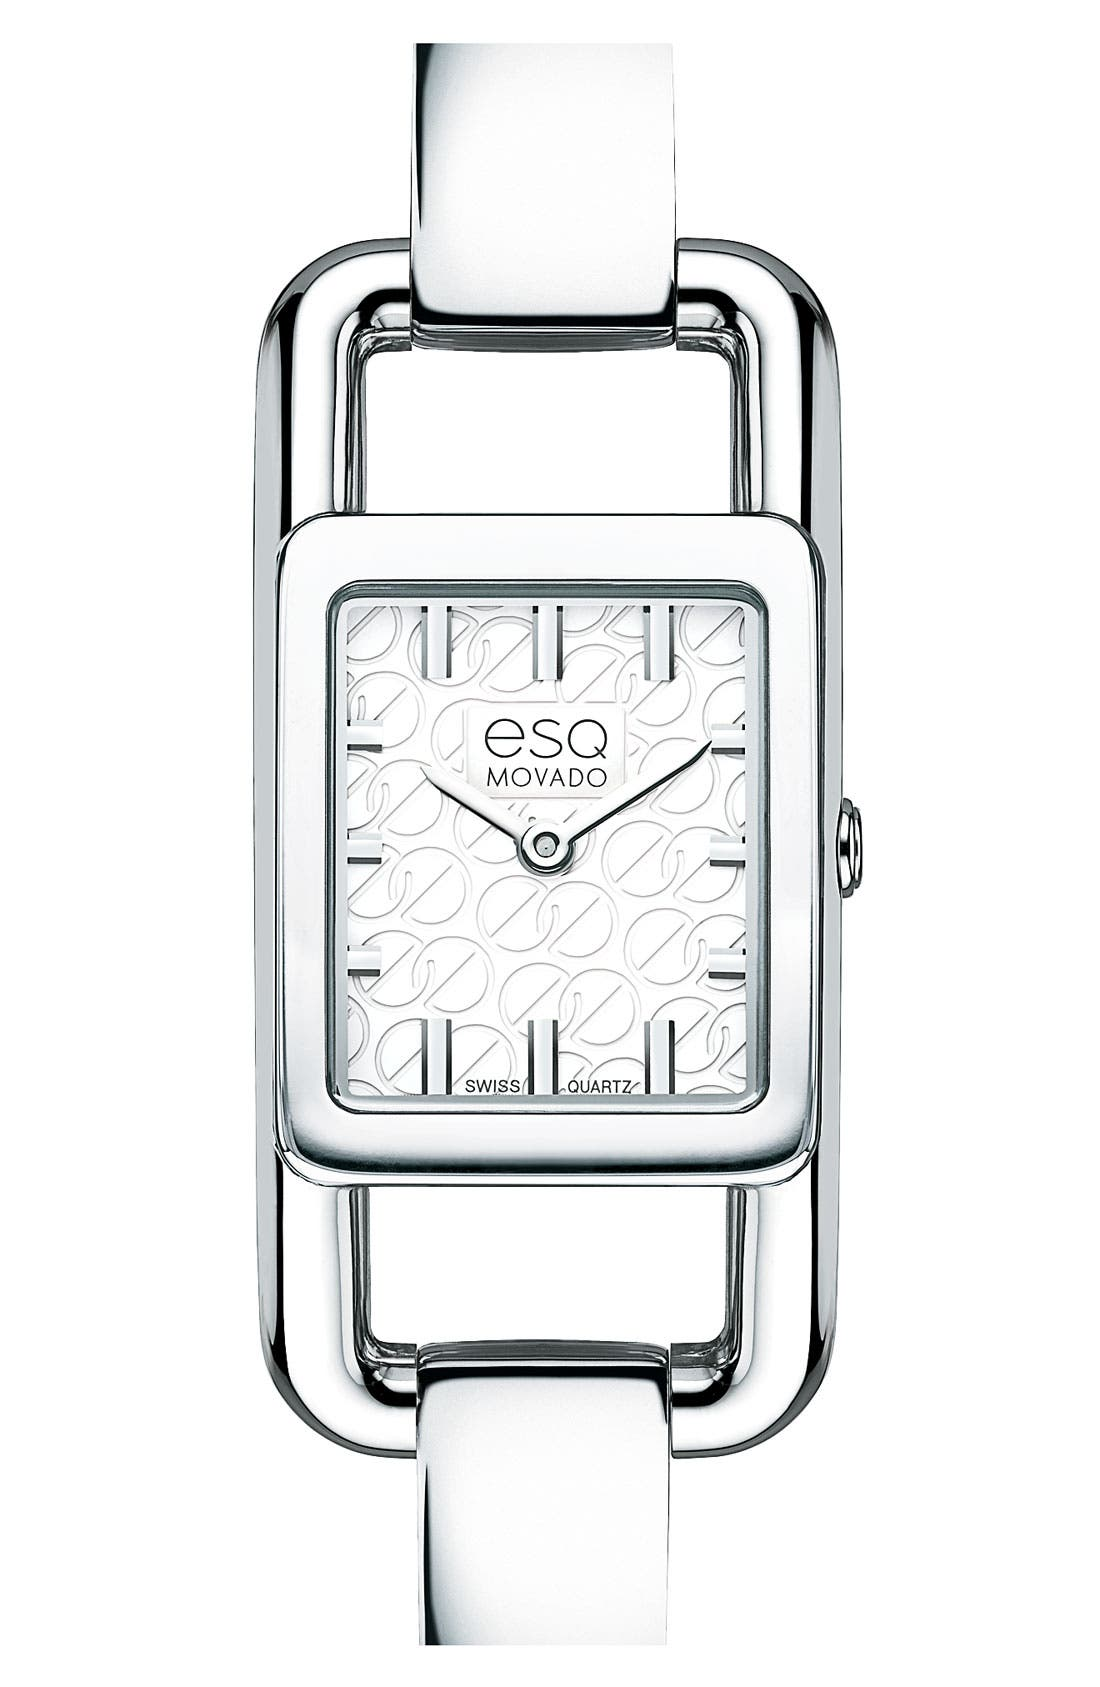 Alternate Image 1 Selected - ESQ Movado 'Angle' Rectangular Bangle Watch